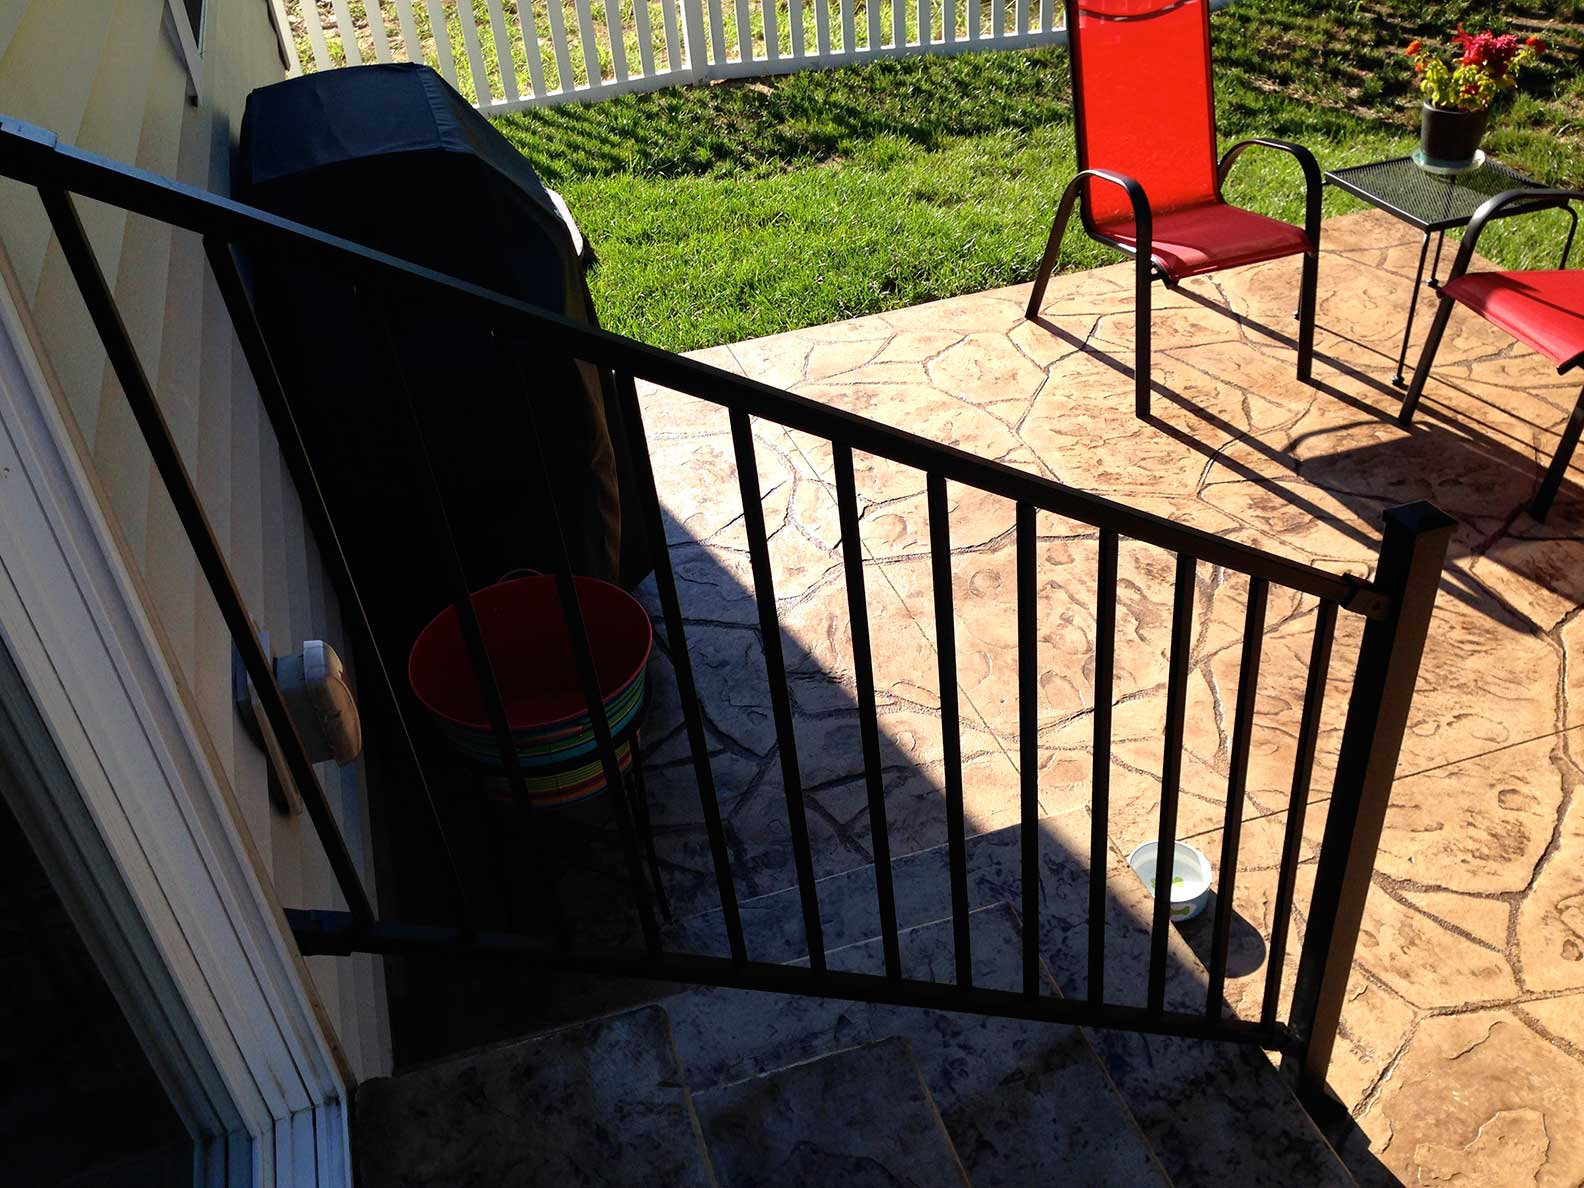 grill on patio